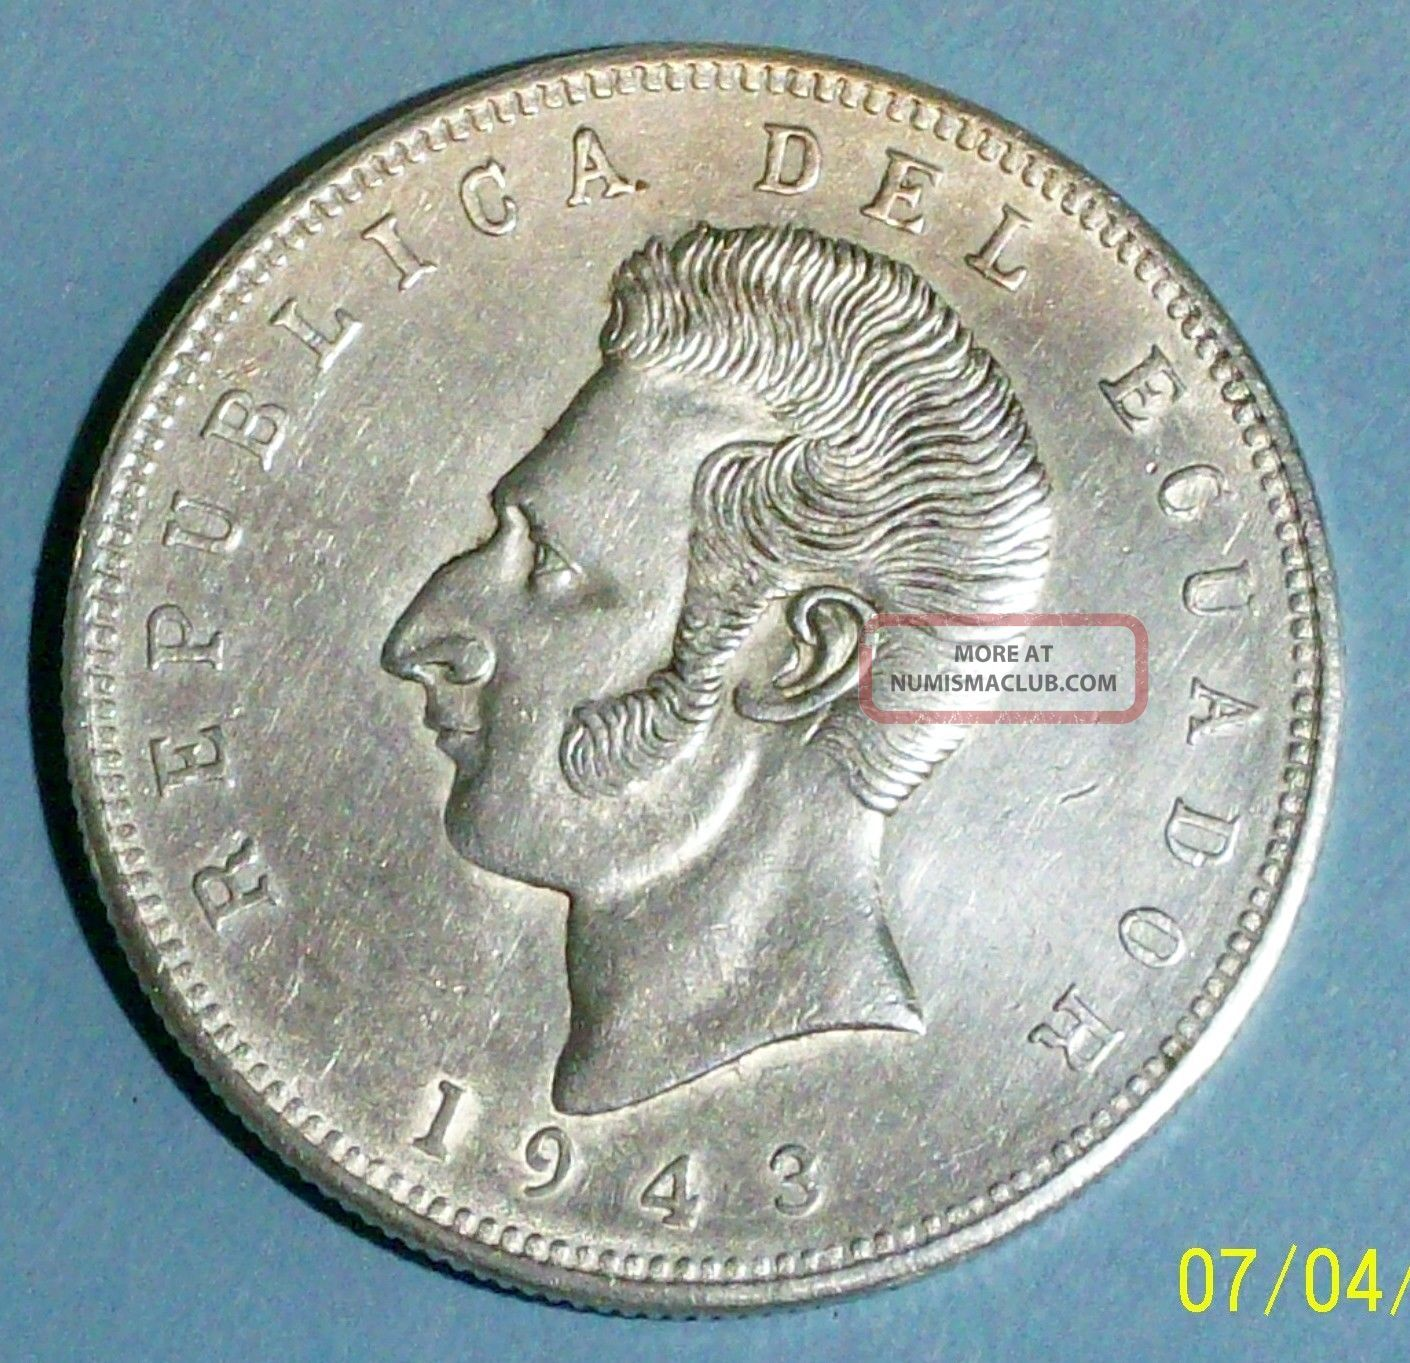 Ecuador 5 Sucres 1943 Mo Almost Uncirculated 0.  7200 Silver 0.  5787 Oz Coin South America photo